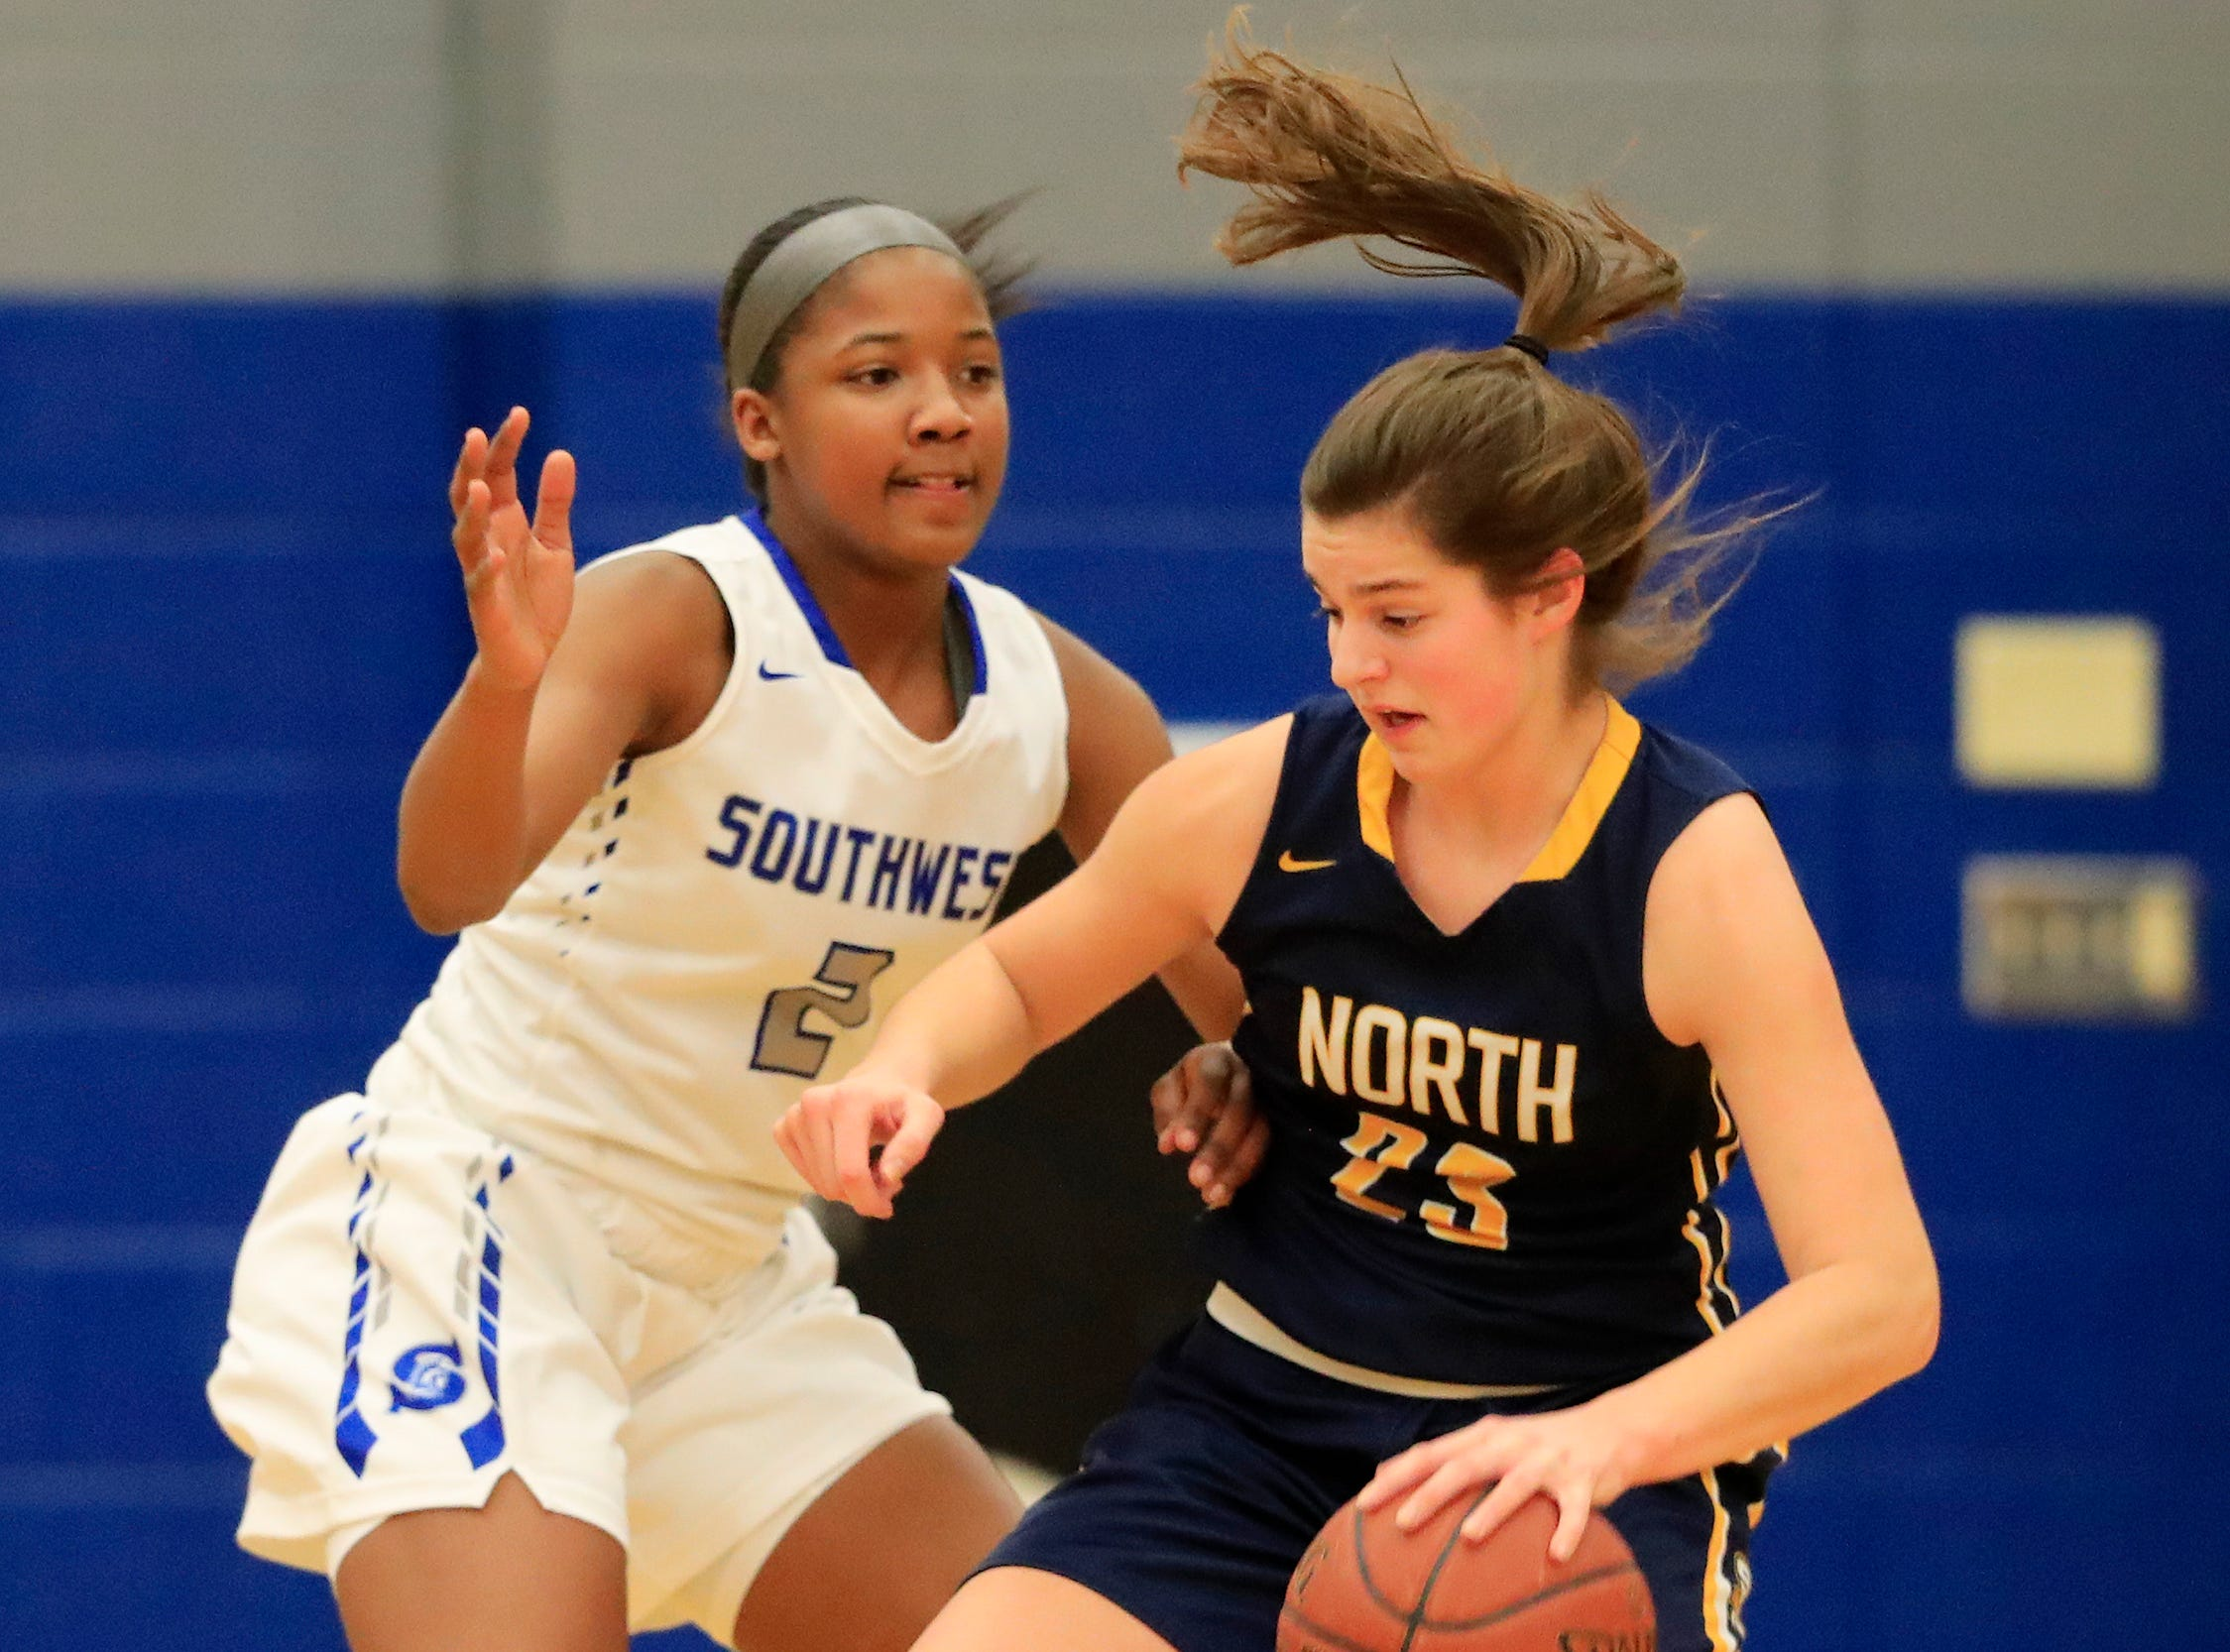 Green Bay Southwest's Jaddan Simmons (2) guards Sheboygan North's Meredith Opie (23) in a girls basketball game at Southwest High School on Tuesday, February 5, 2019 in Green Bay, Wis.